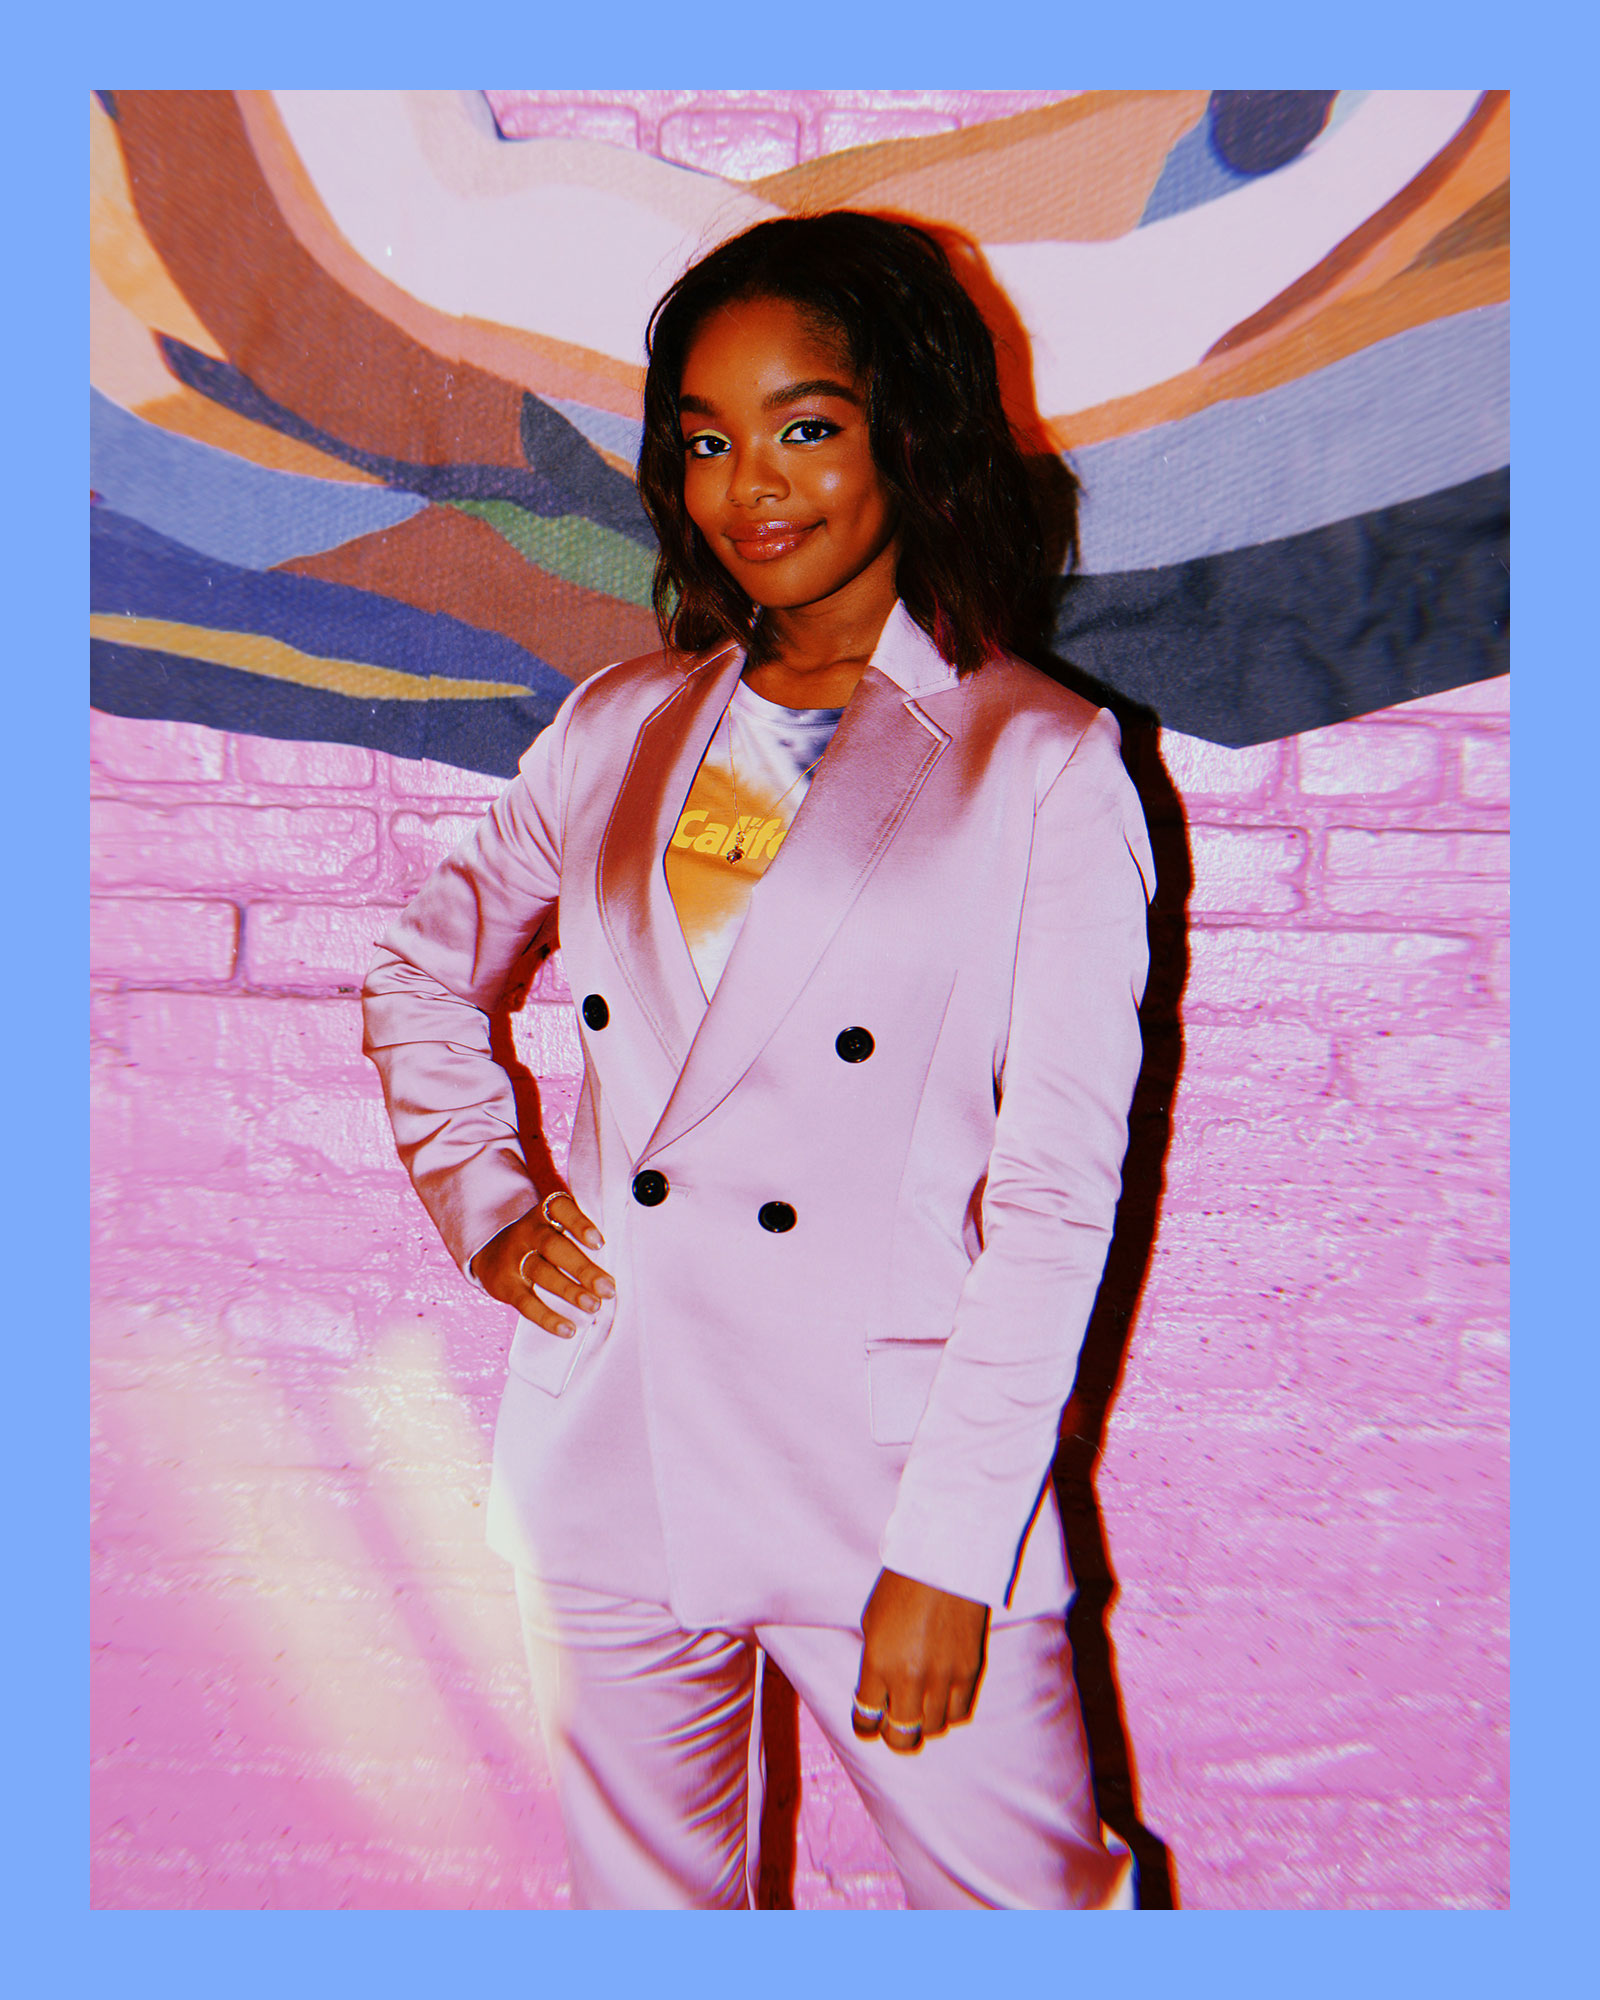 photo of Marsai Martin, an actress, executive producer, and young Black woman wearing a 2-piece pink satin suit, smiling and standing in front of a pink brick wall.